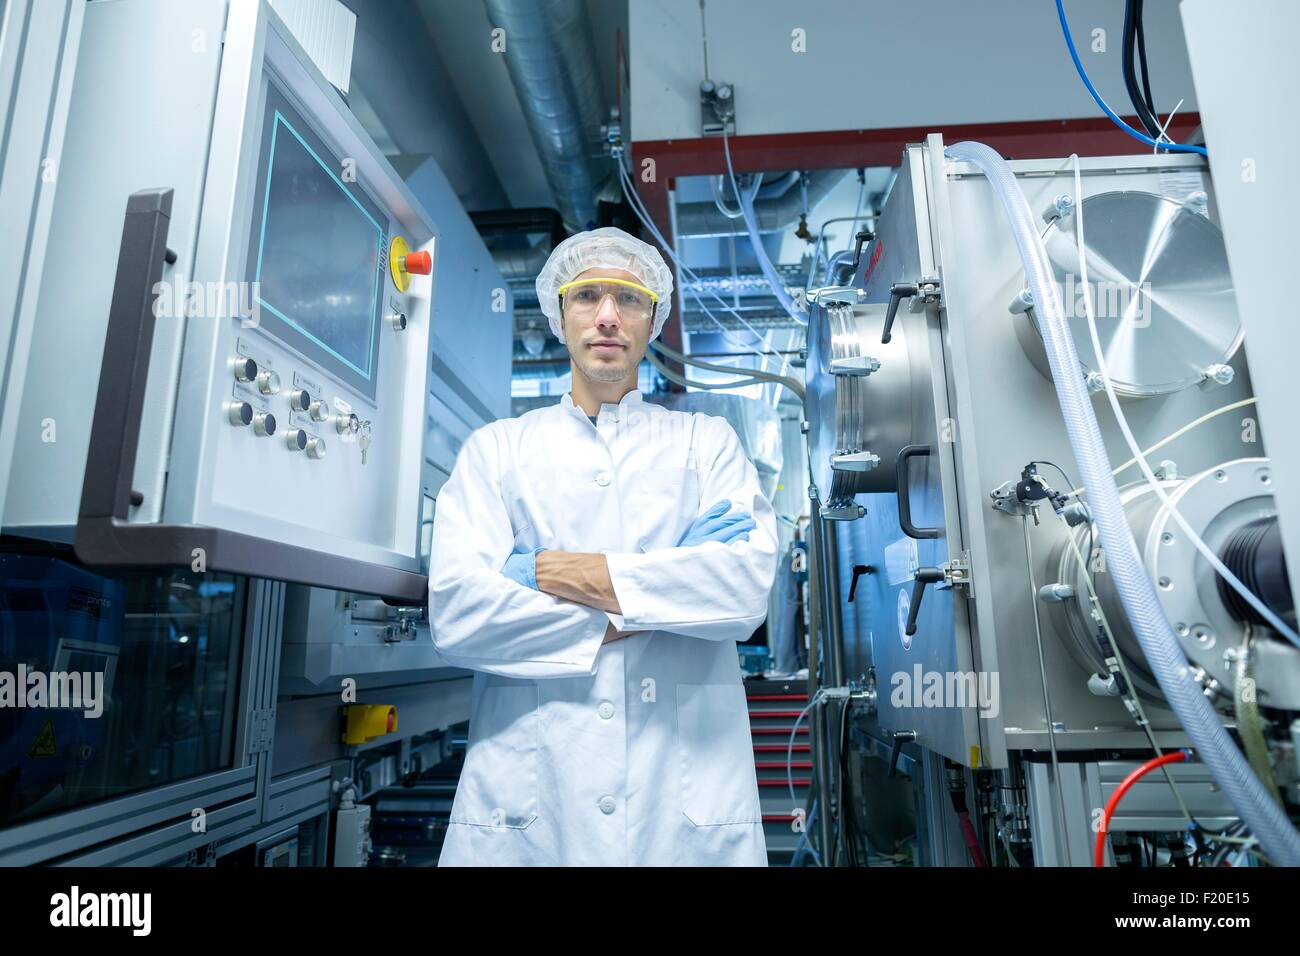 Portrait of male scientist with arms folded in lab cleanroom Stock Photo